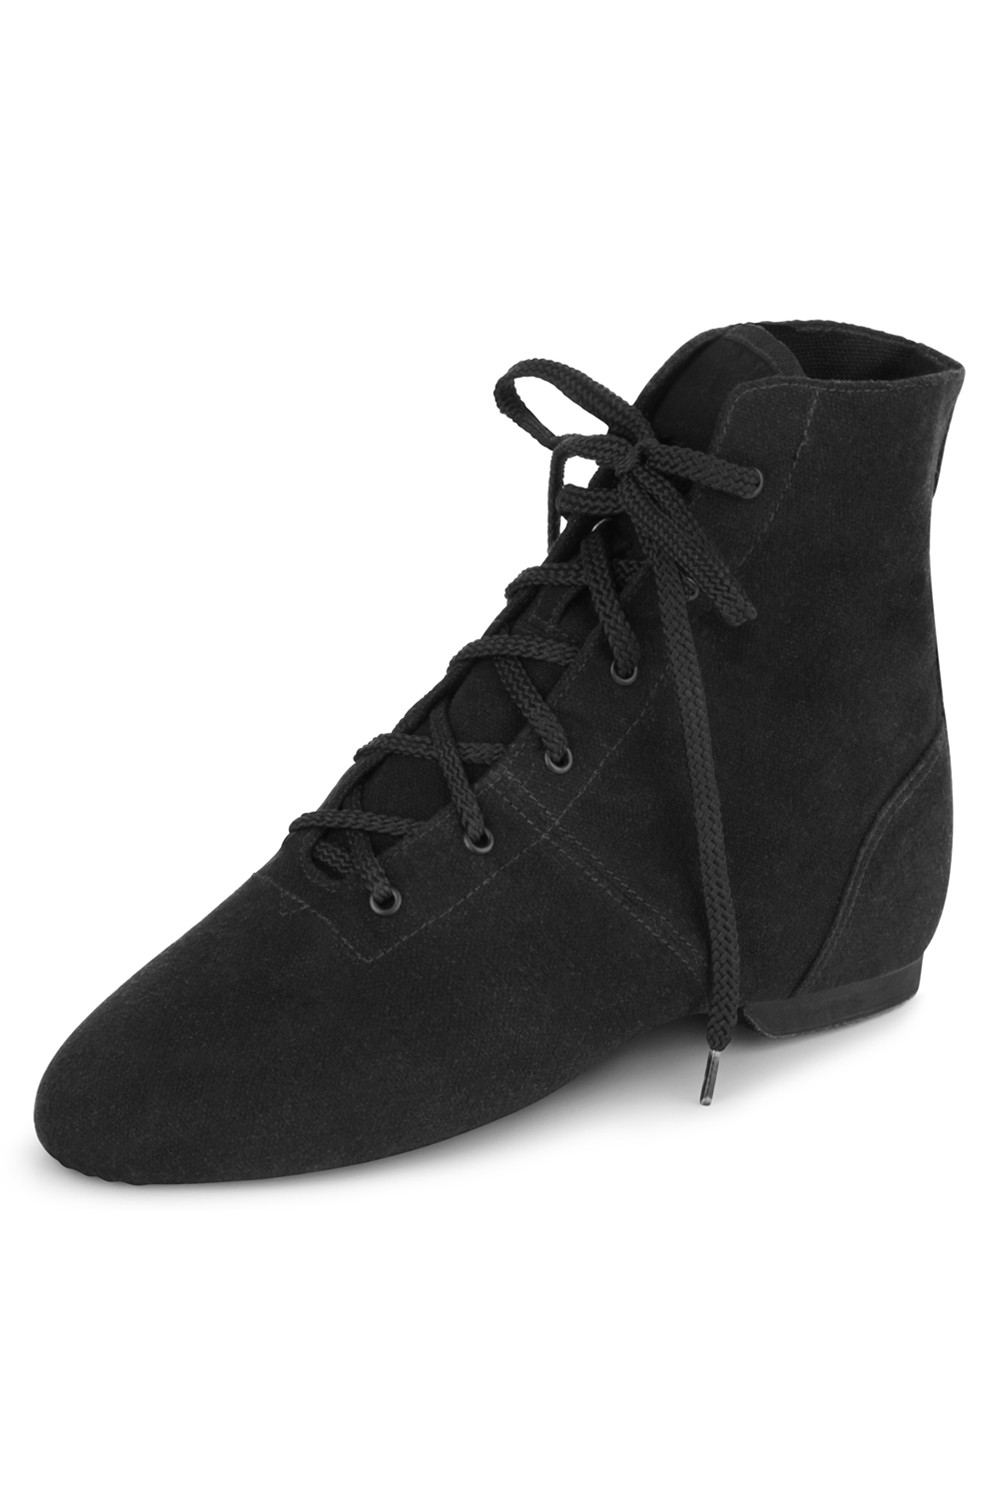 Bottine De Jazz En Toile Women's Jazz Shoes